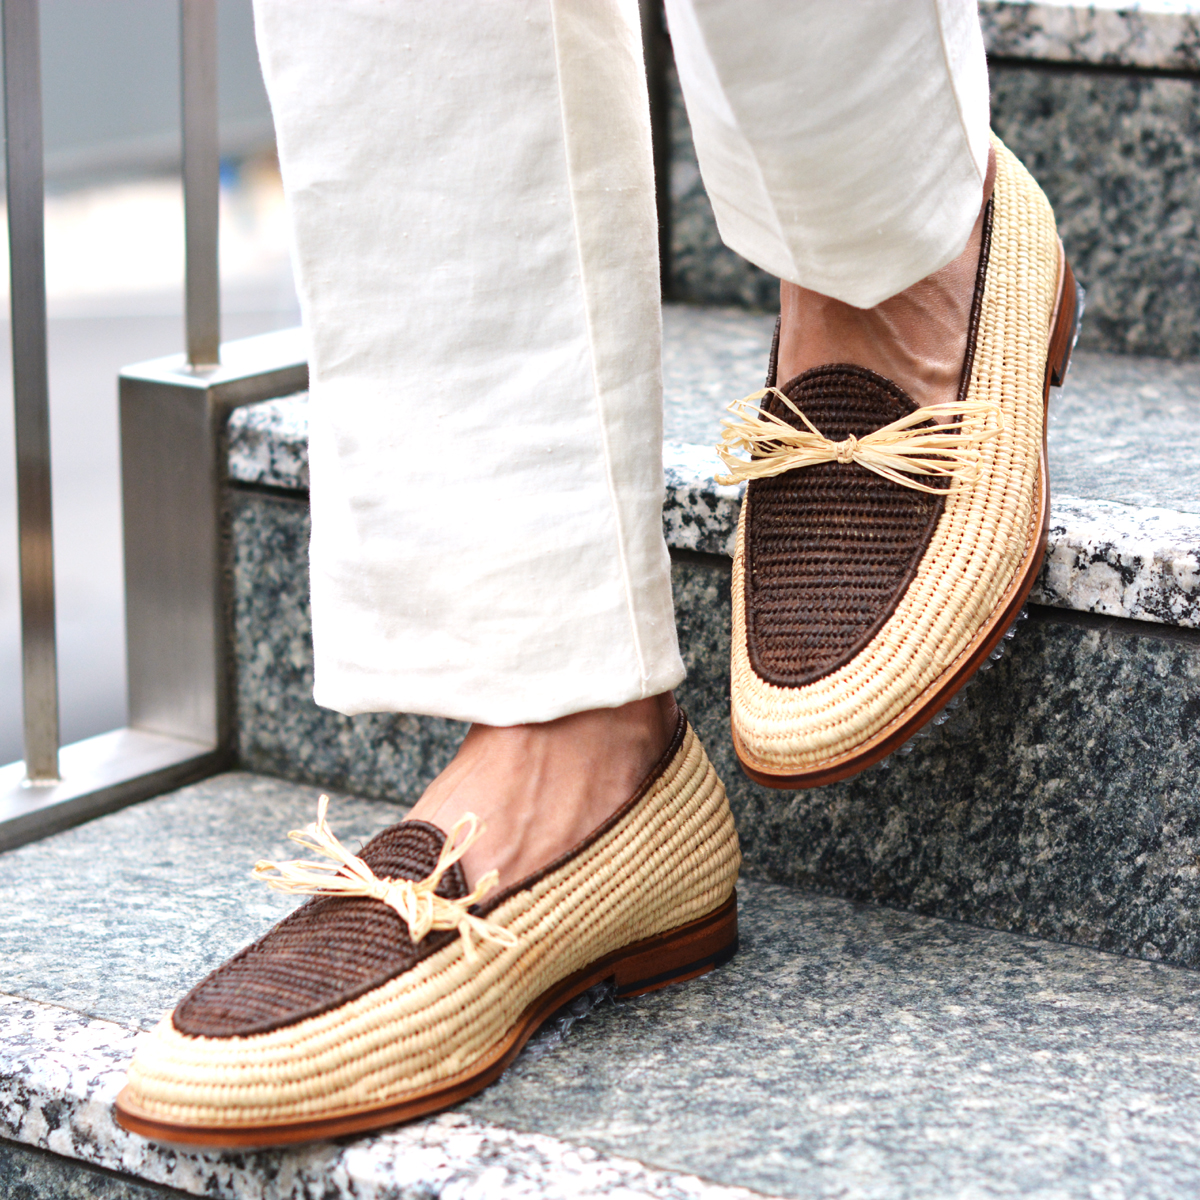 Contre-Allee【コントレアリー】リボンローファー Souliers BERNOUSSI Natural×Brown ラフィア ブラウン